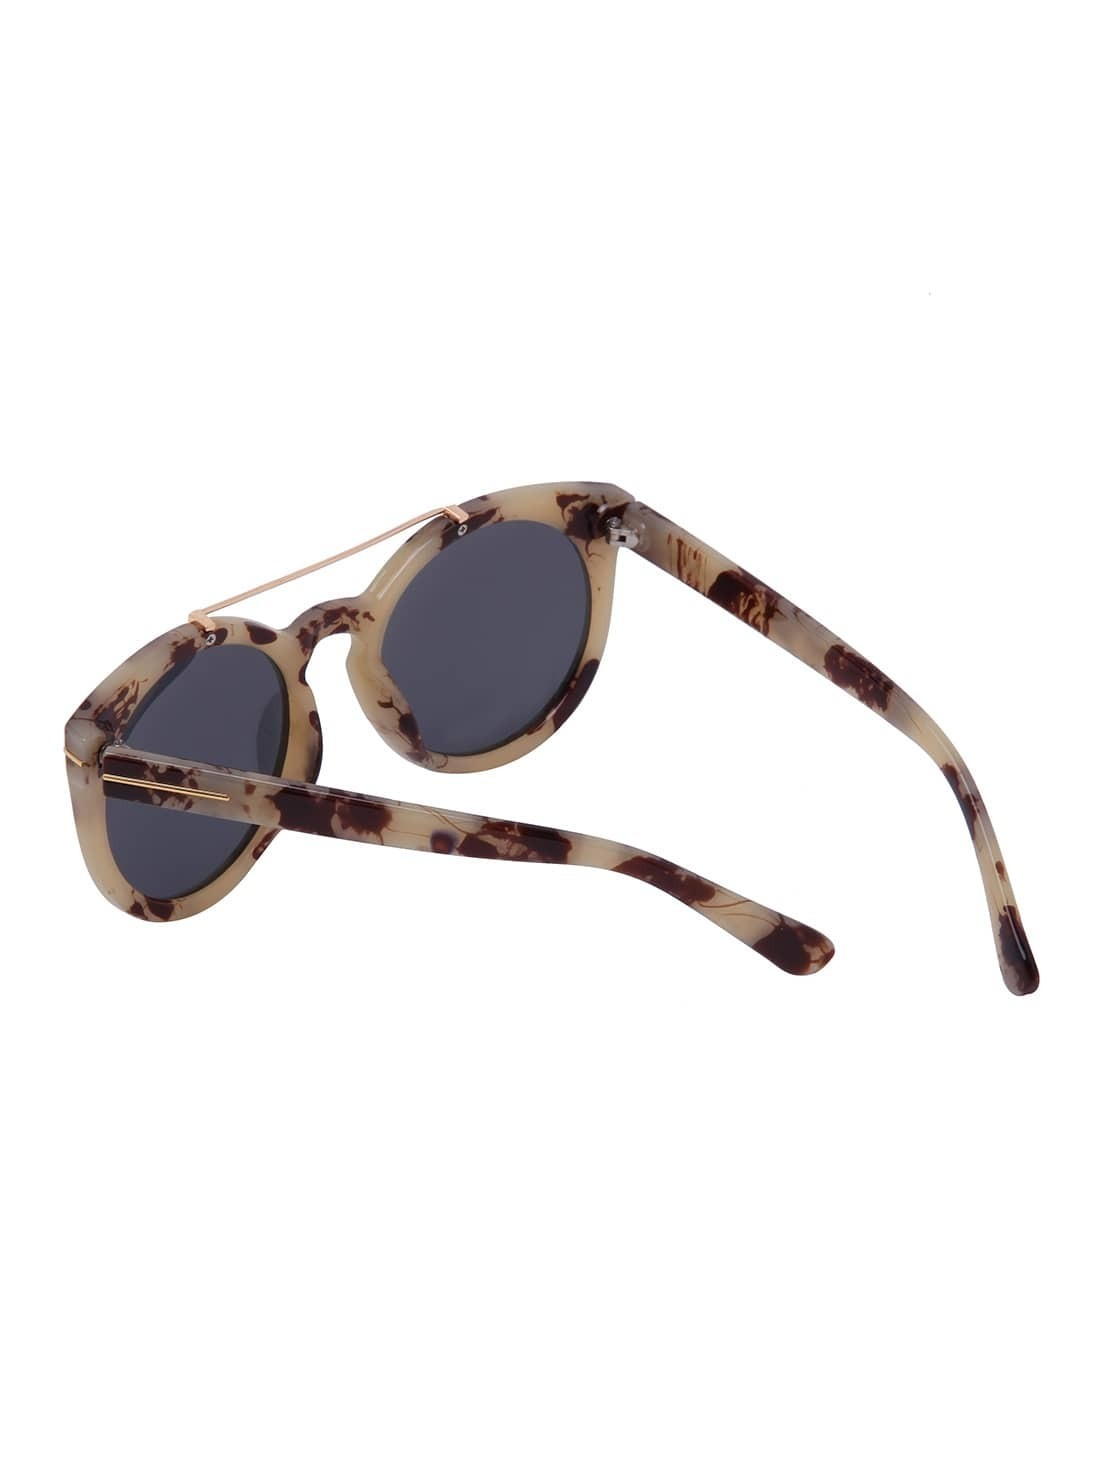 Aviator Sunglasses Without Top  brown frame top bar oversized round sunglasses shein sheinside